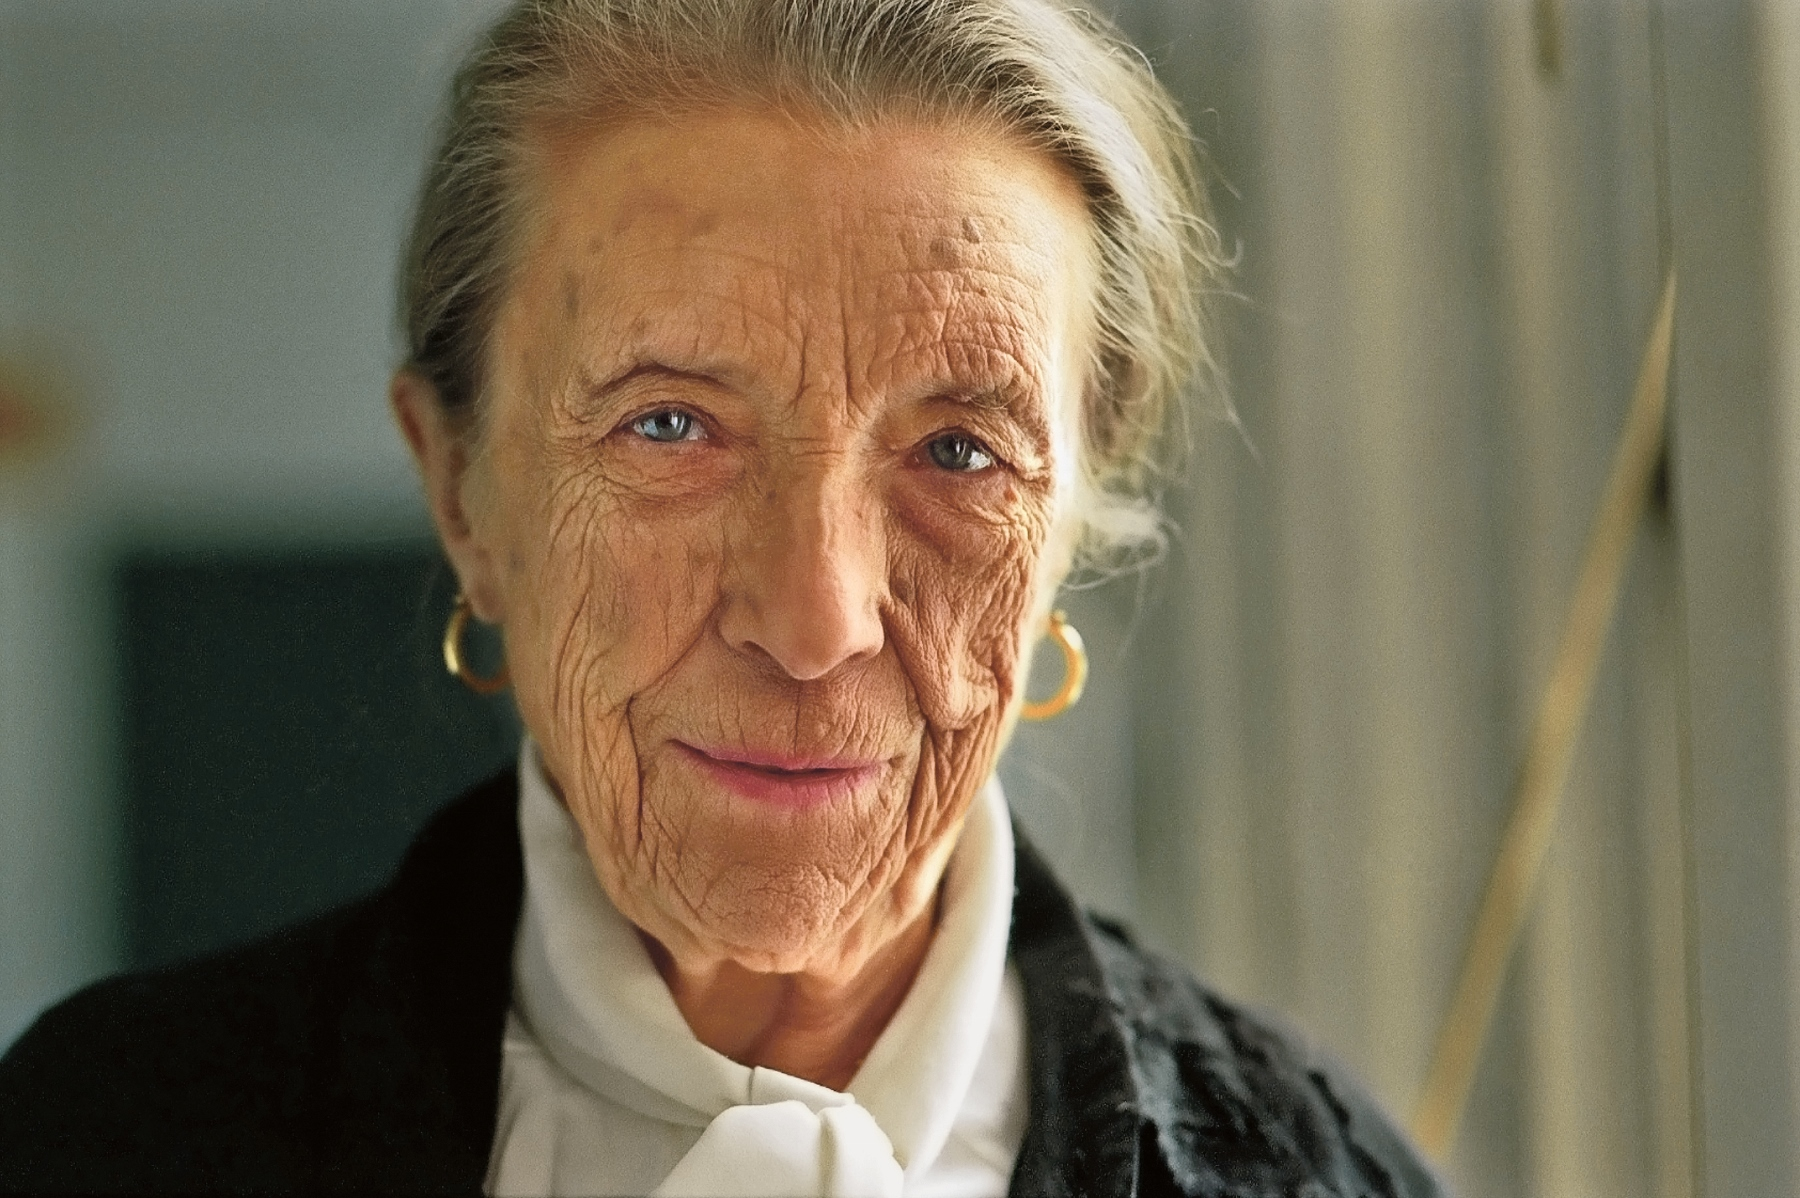 How one fine night louise bourgeois told me about her sketchbooks iskn - Bourgeois foto ...